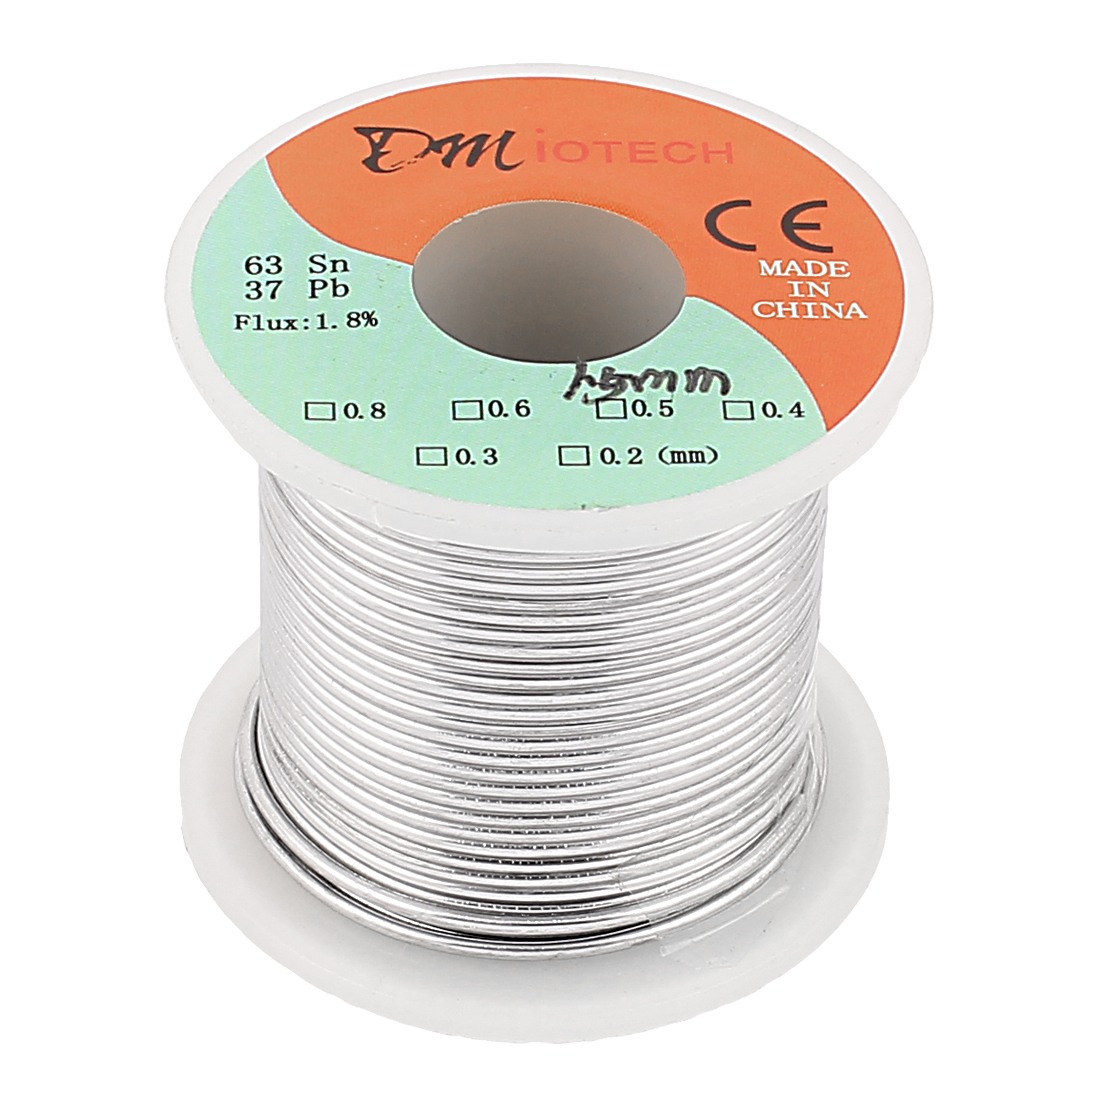 1.5mm Rosin Core Solder Tin Lead Solder Wire 63/37 for Electrical Soldering 200g